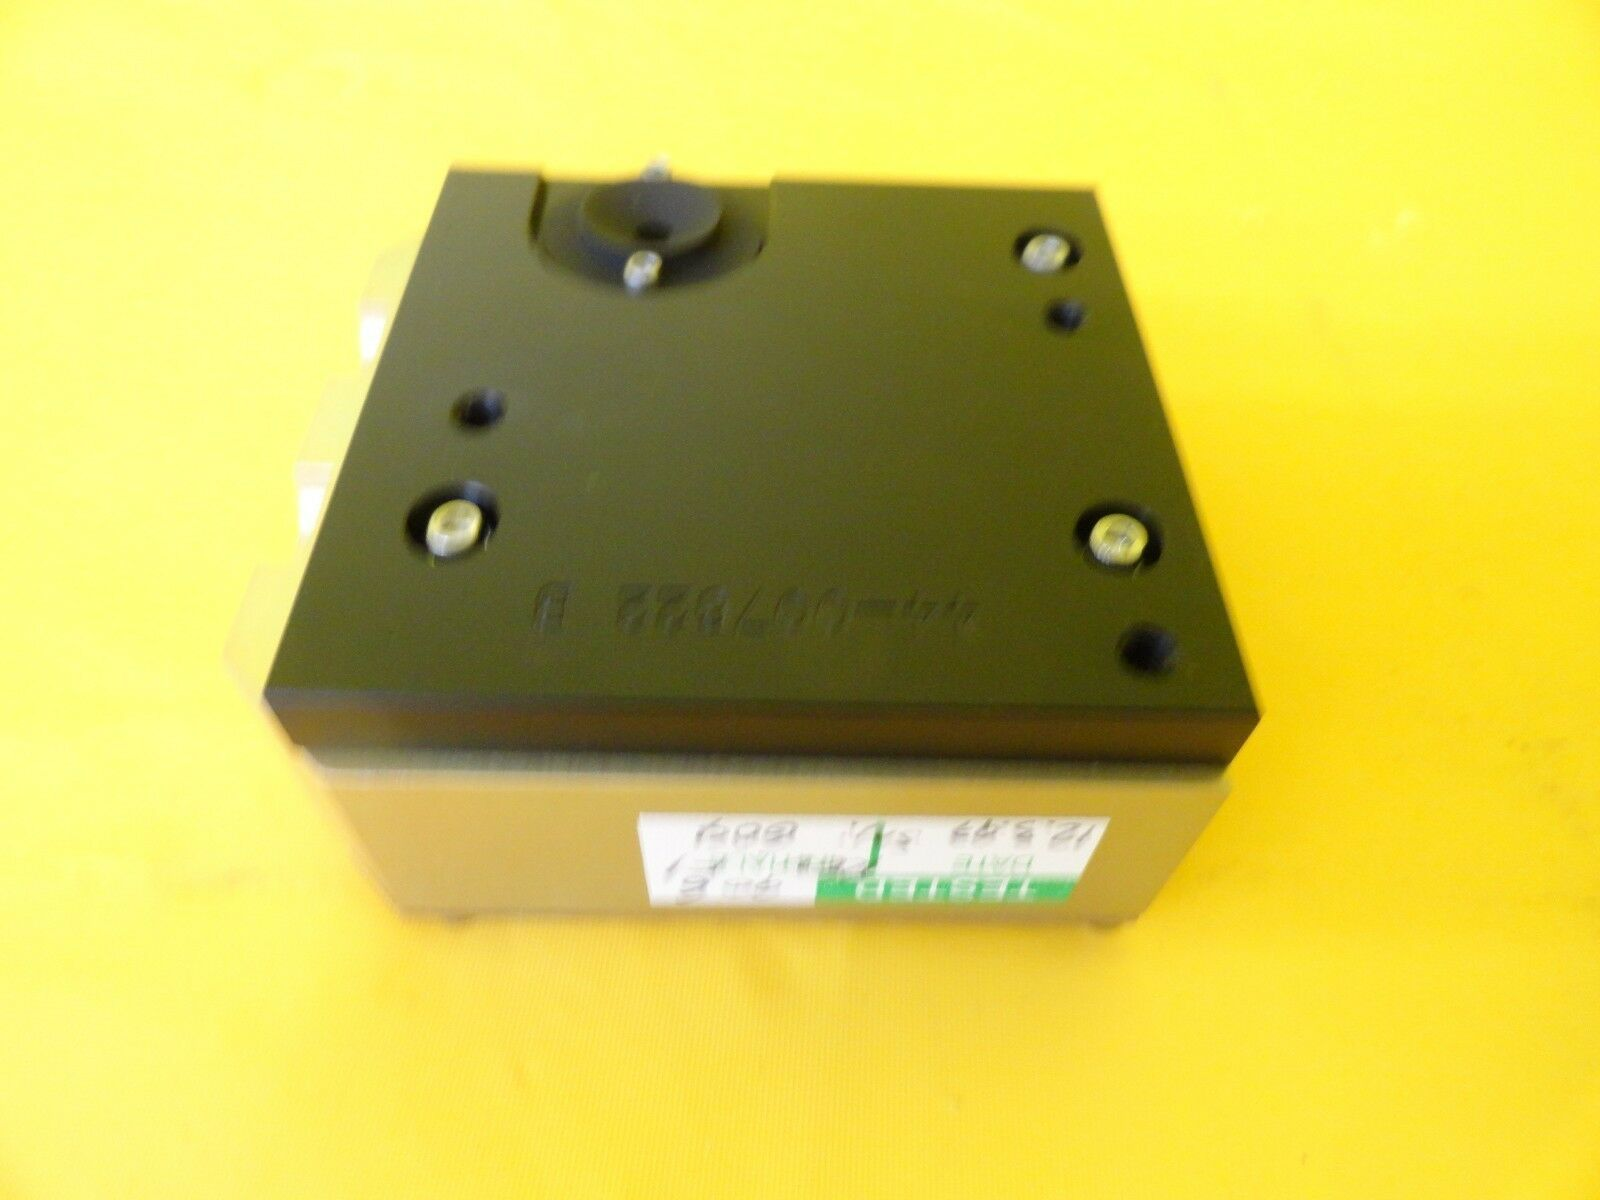 Therma-Wave 18-007478 Laser Sensor Module Rev. F1 Opti-Probe 2600B Used Working